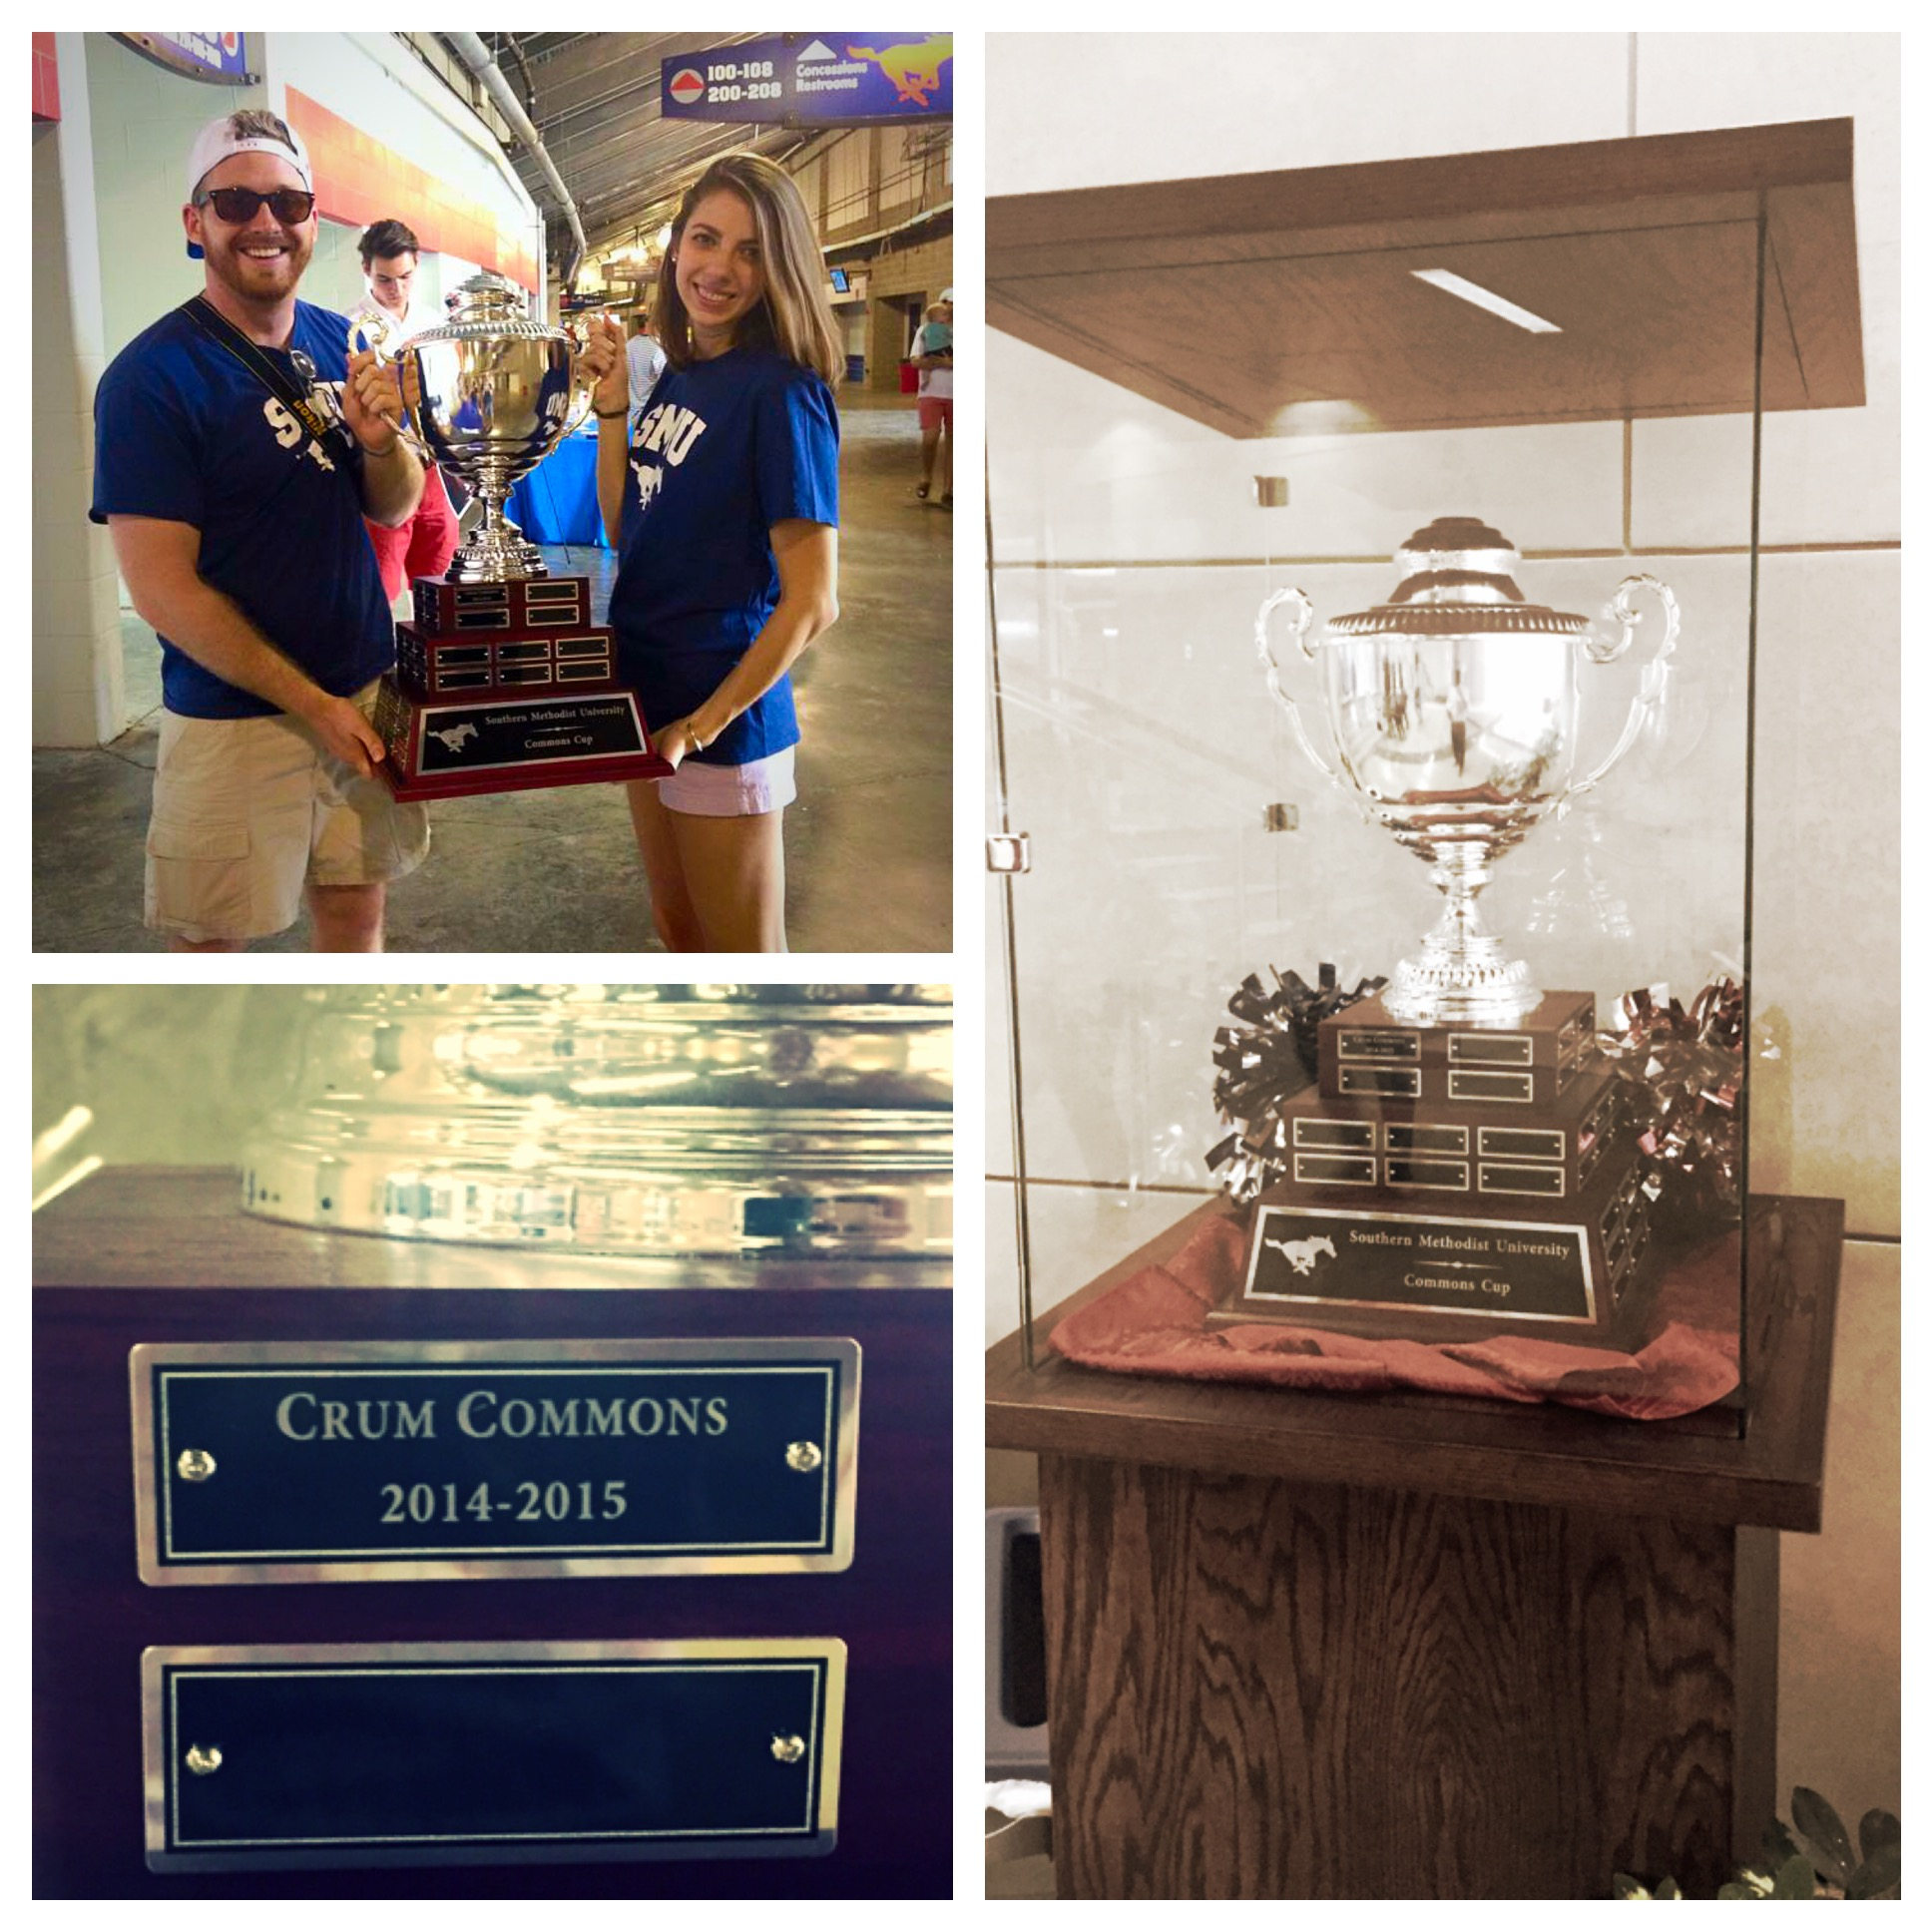 First Crum RCD Sam Gavic and 2014-15 Crum President Meaghan Binion holding trophy after presented at the SMU Spring Game